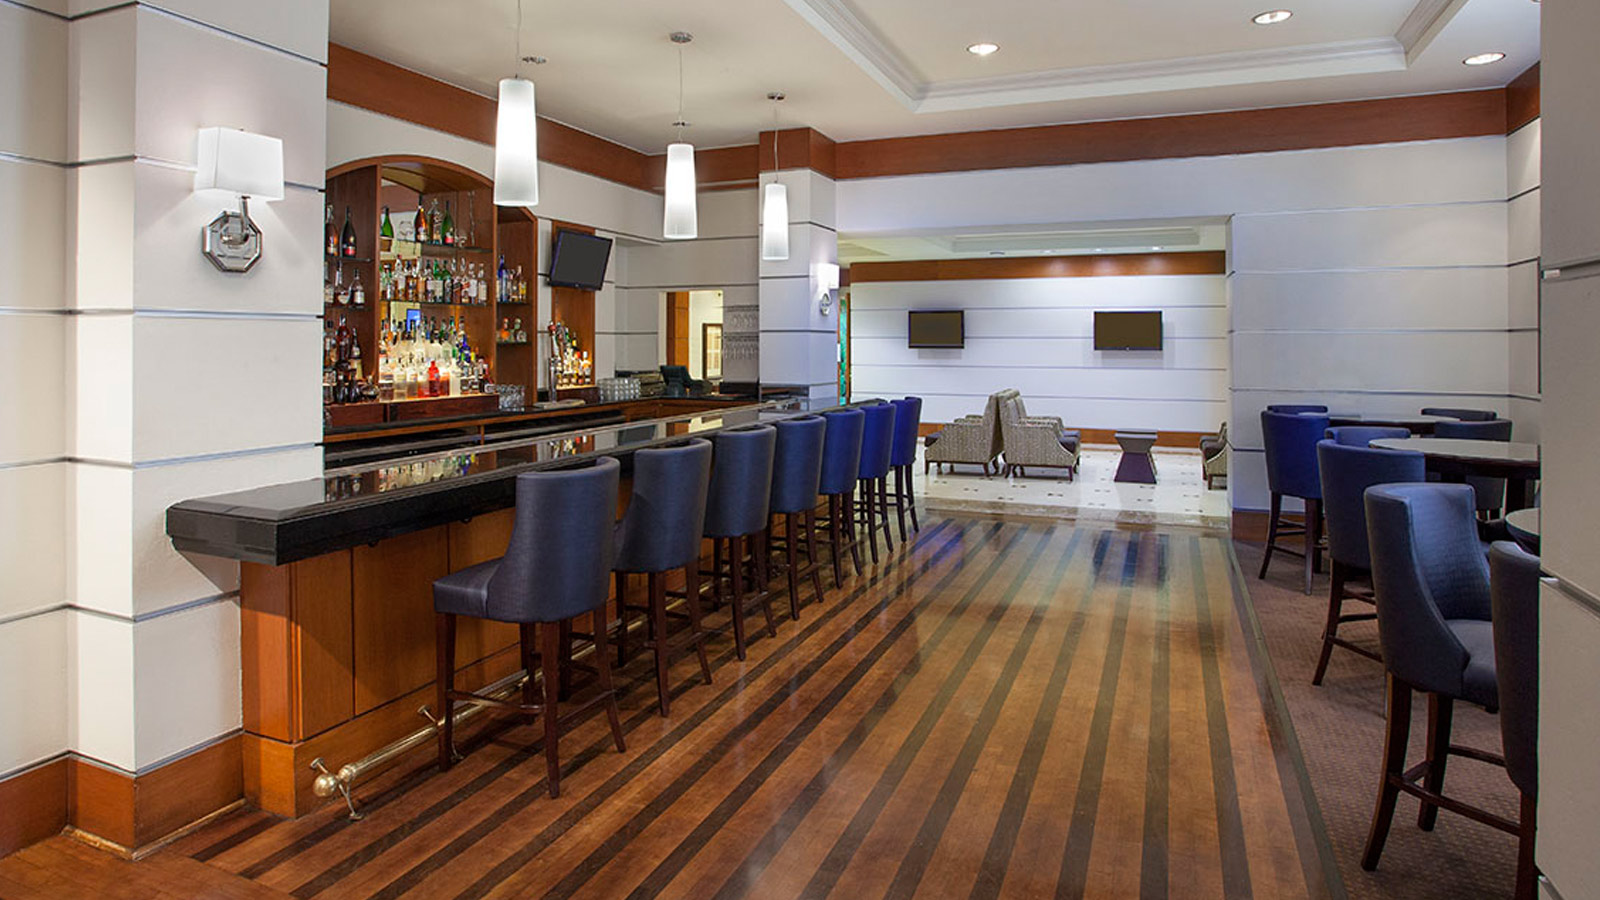 Sheraton Suites Houston near the Galleria - Wild Plum Lounge